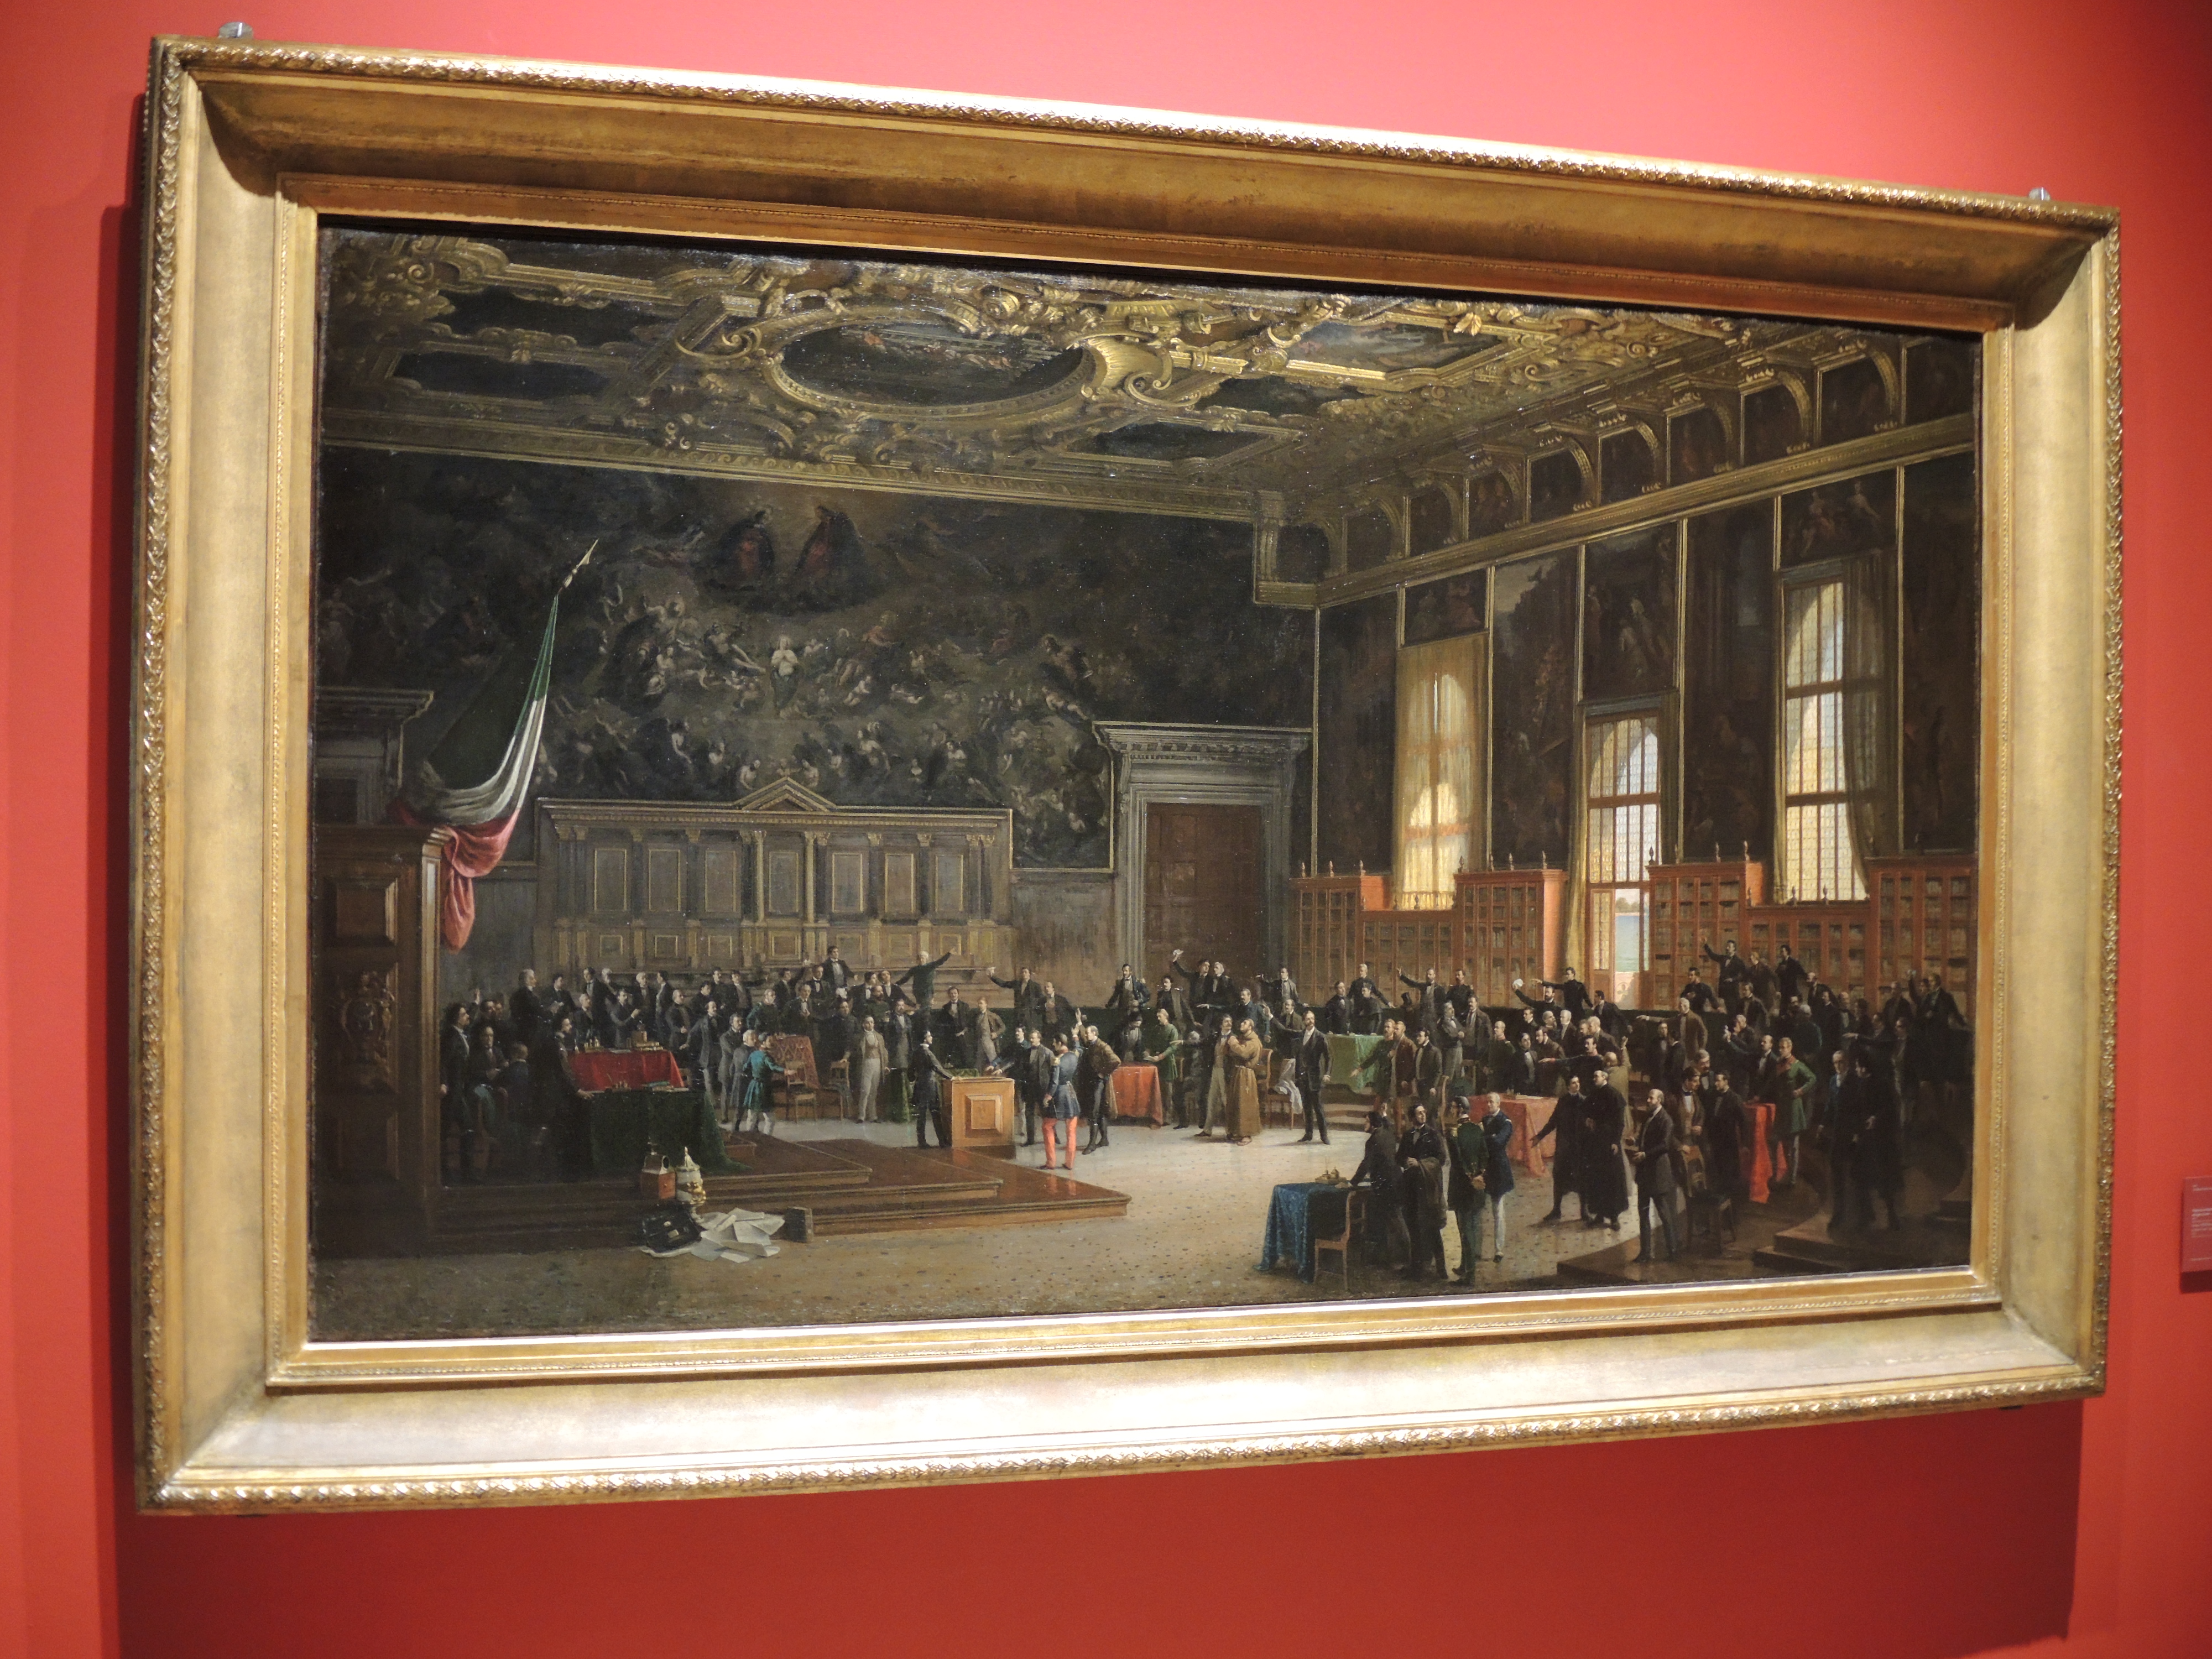 1848 - The oath of Venetian officials to defend the city against the Austrians. Several Venetina Jews were part of the Assembly